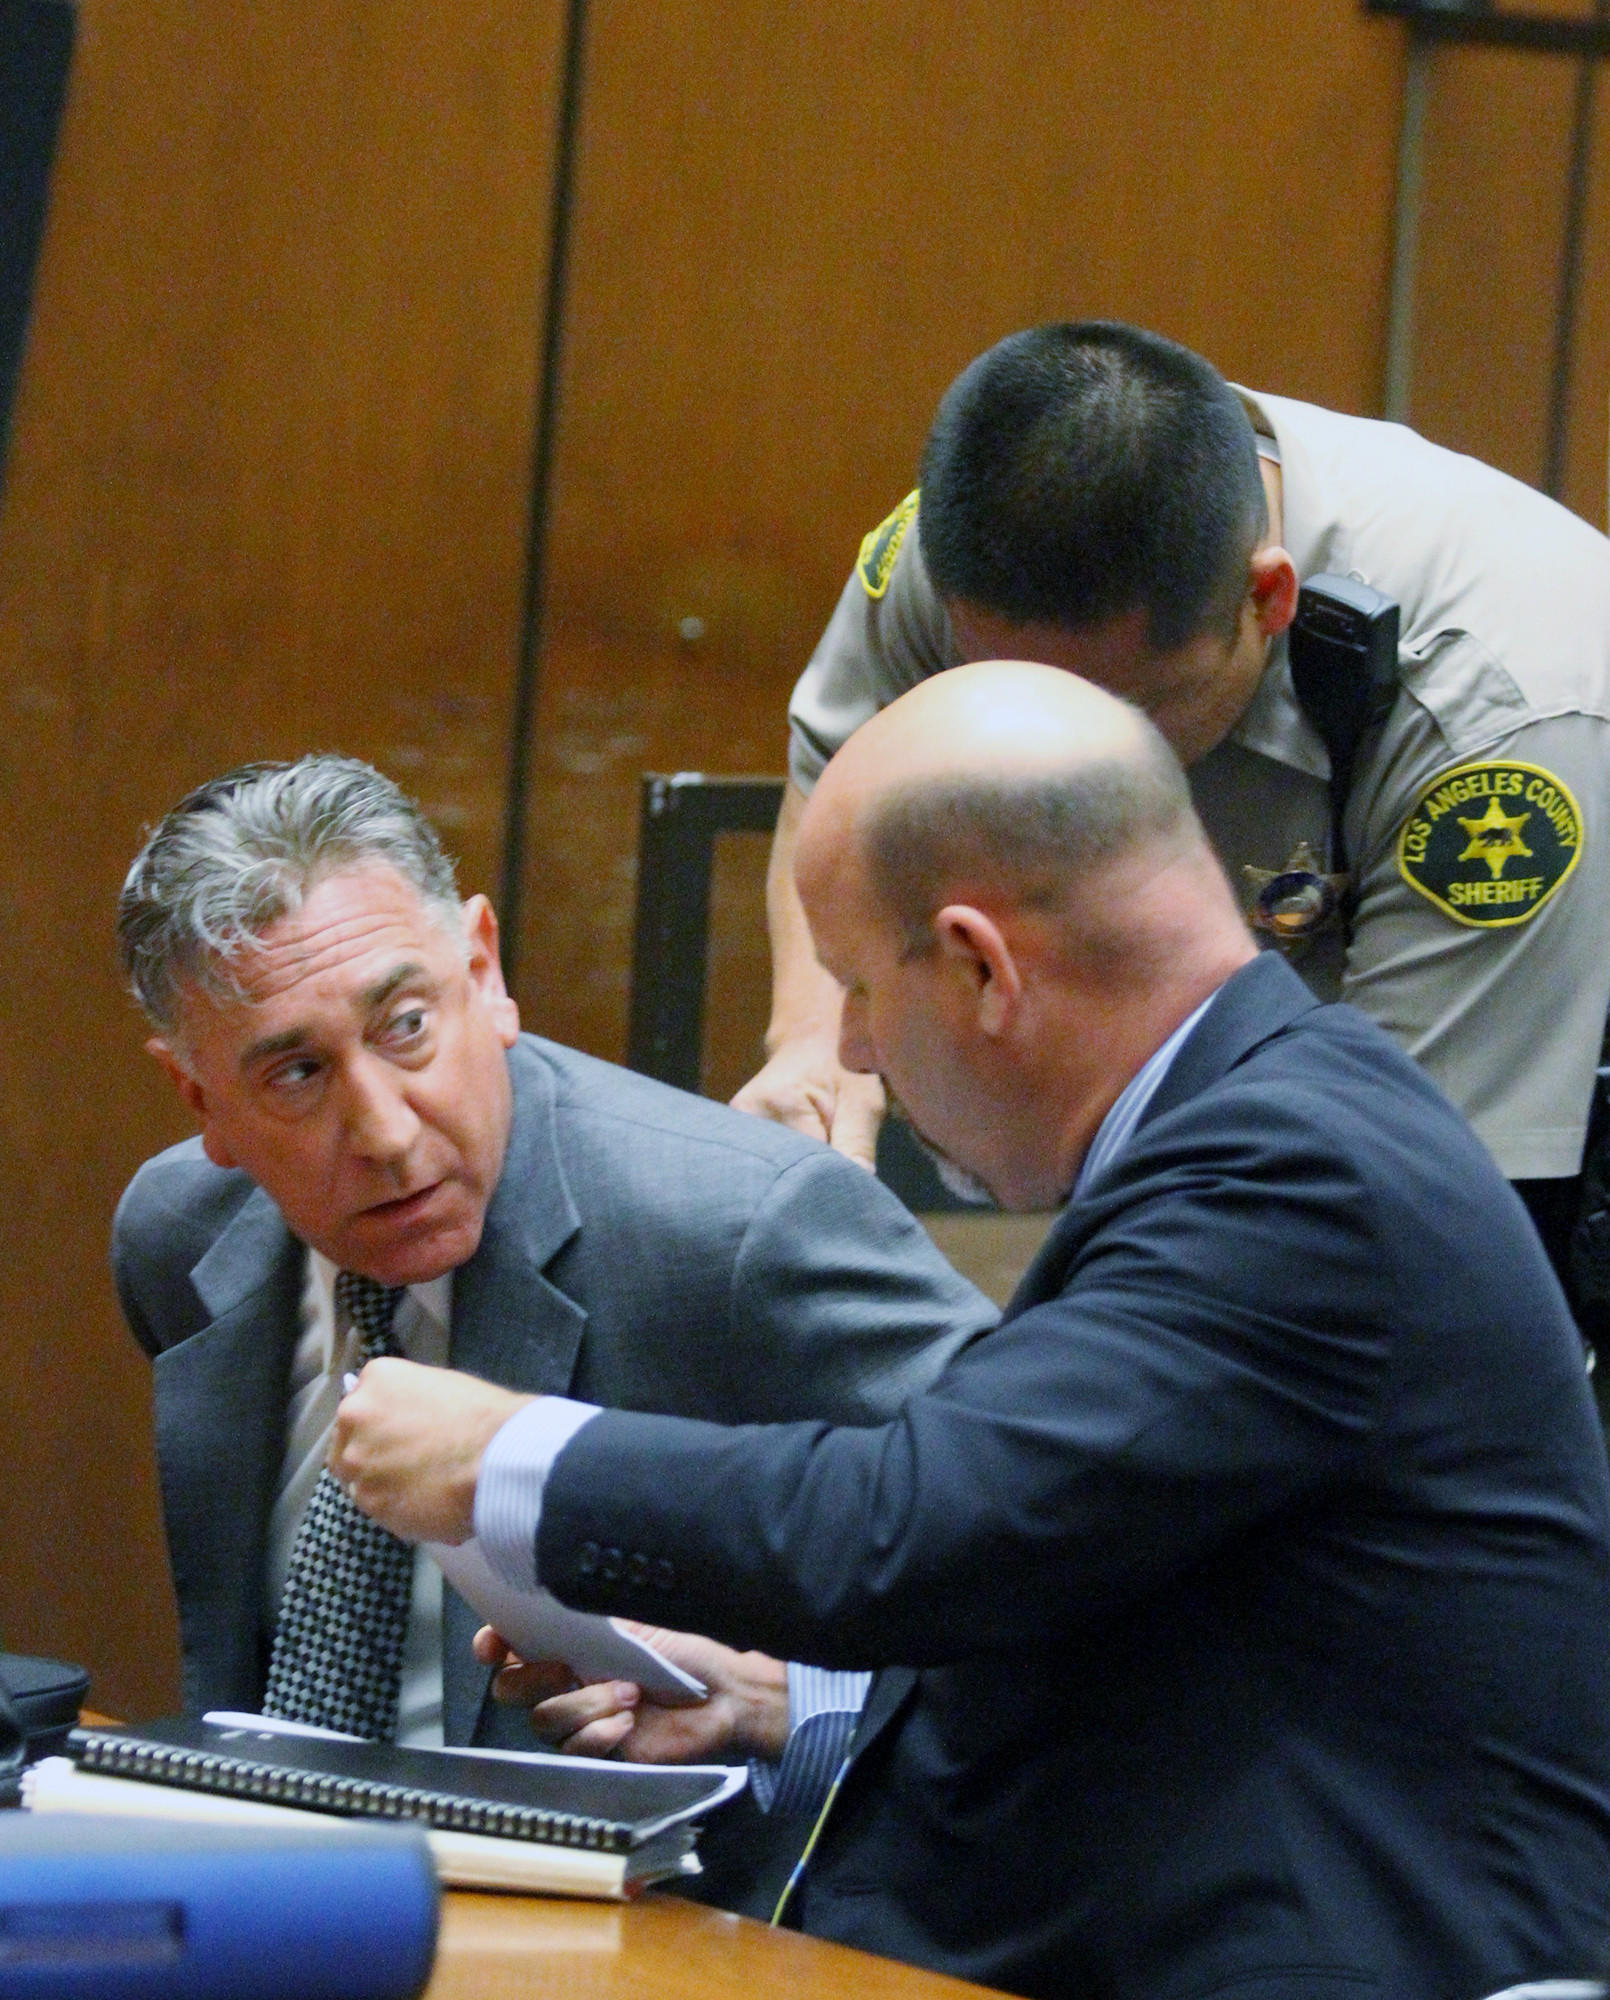 Former Glendale Mayor John Drayman, after he was sentenced to one year in Los Angeles County jail, is put in handcuffs by a Los Angeles County Sheriff's deputy with his lawyer Sean McDonald at his side at Superior Court in Los Angeles on Monday, April 7, 2014. Drayman was sentenced for embezzling proceeds from the Montrose Farmer's Market, and filing false tax returns. His sentence is 365 days in county jail, with 4 days credit for time served, and to pay restitution and all court fees.